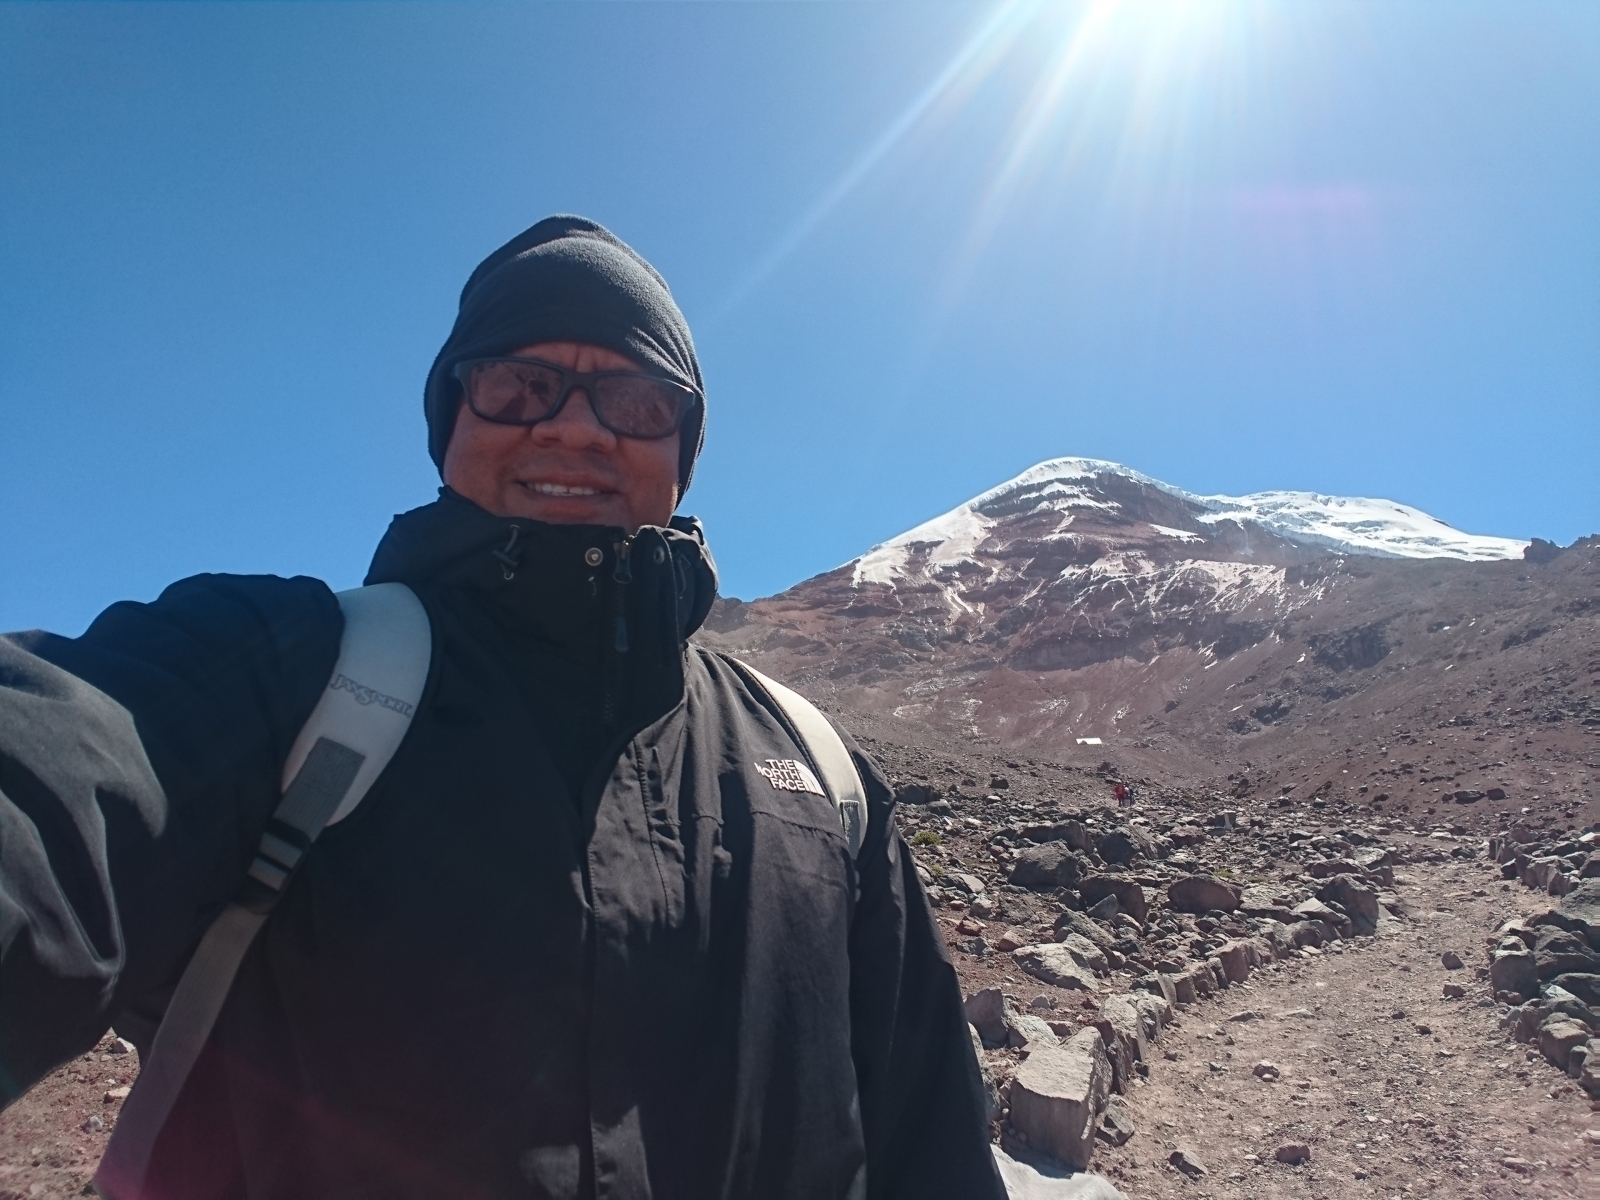 Climbing The Chimborazo